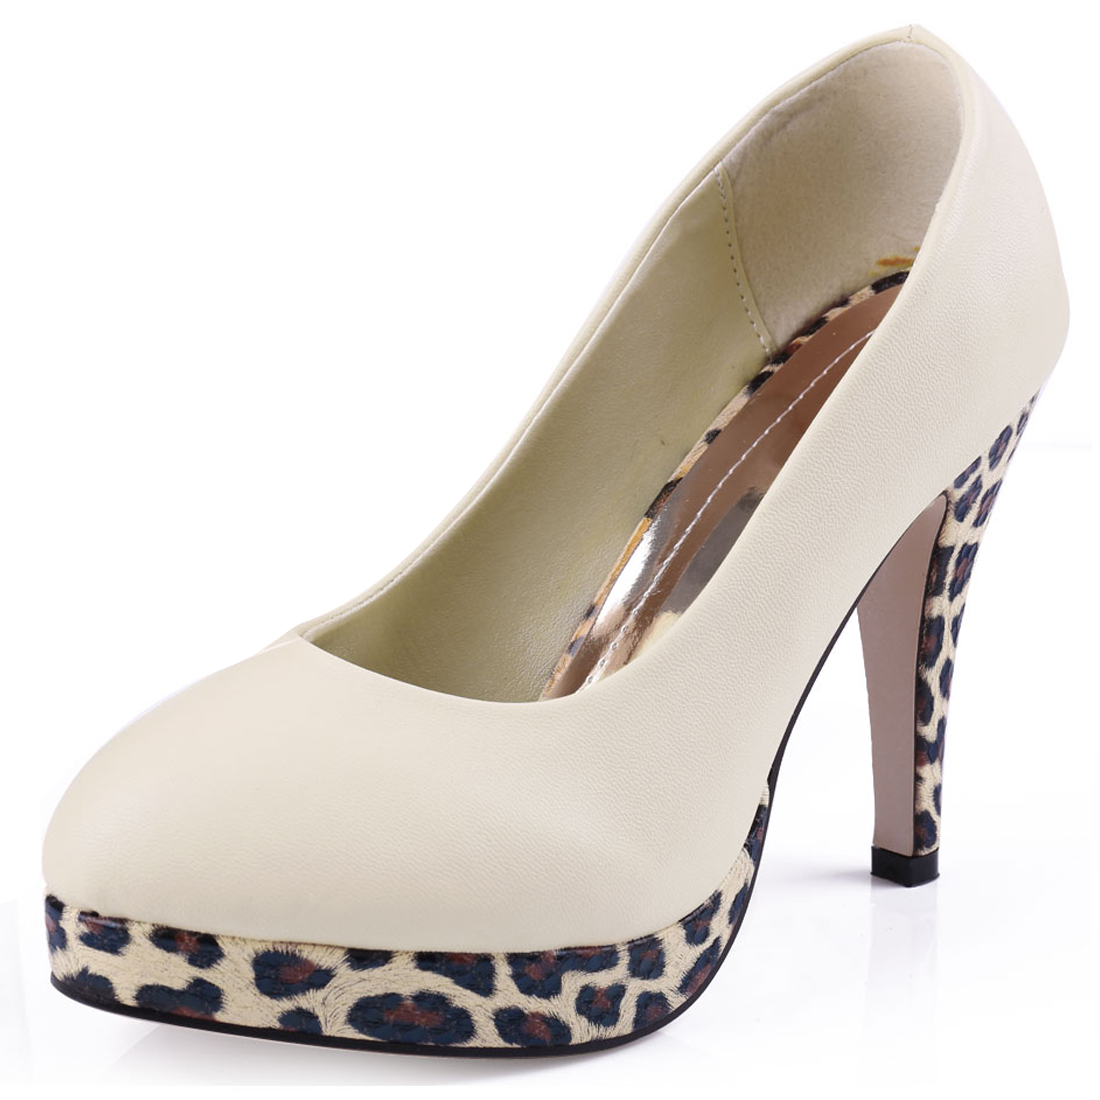 Women Round Toe Leopard Pattern Design Stillettos Beige Platform Pumps US 6.5